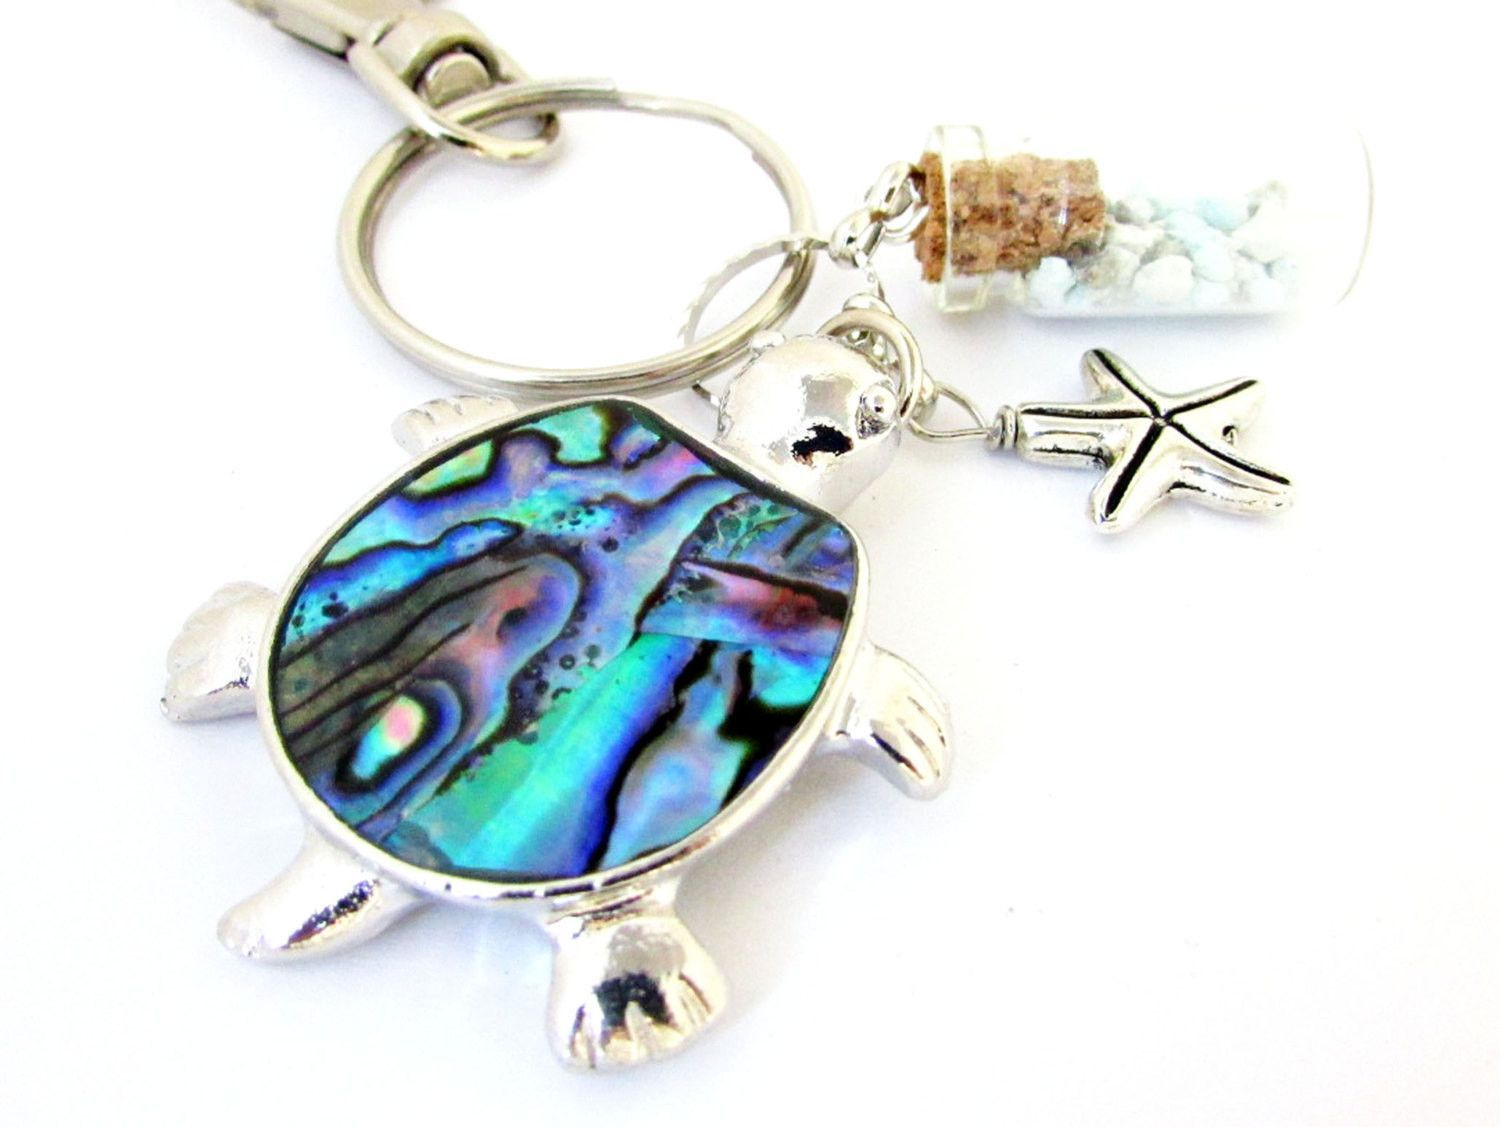 Sea Turtle Keychain, Turquoise Stones Keychain, Abalone Shell Turtle Keychain, Car Accessories, Beach Inspired Keyring